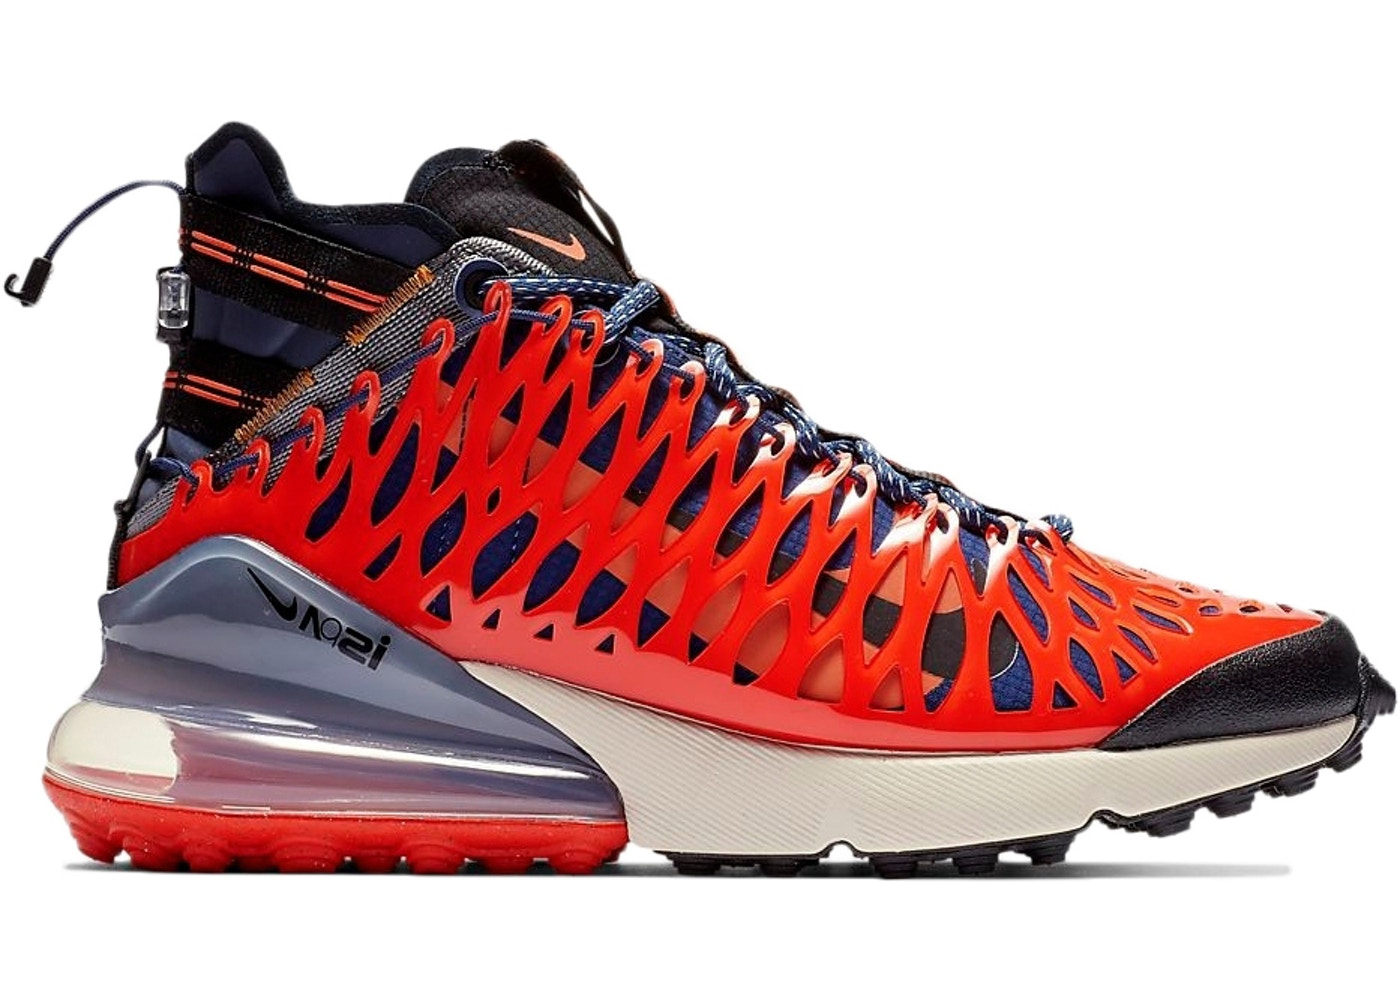 ナイキ NIKE エア マックス 青 ブルー スニーカー 【 AIR BLUE MAX 270 ISPA VOID TERRA ORANGE BLACKTERRA ORANGEOATMEAL 】 メンズ